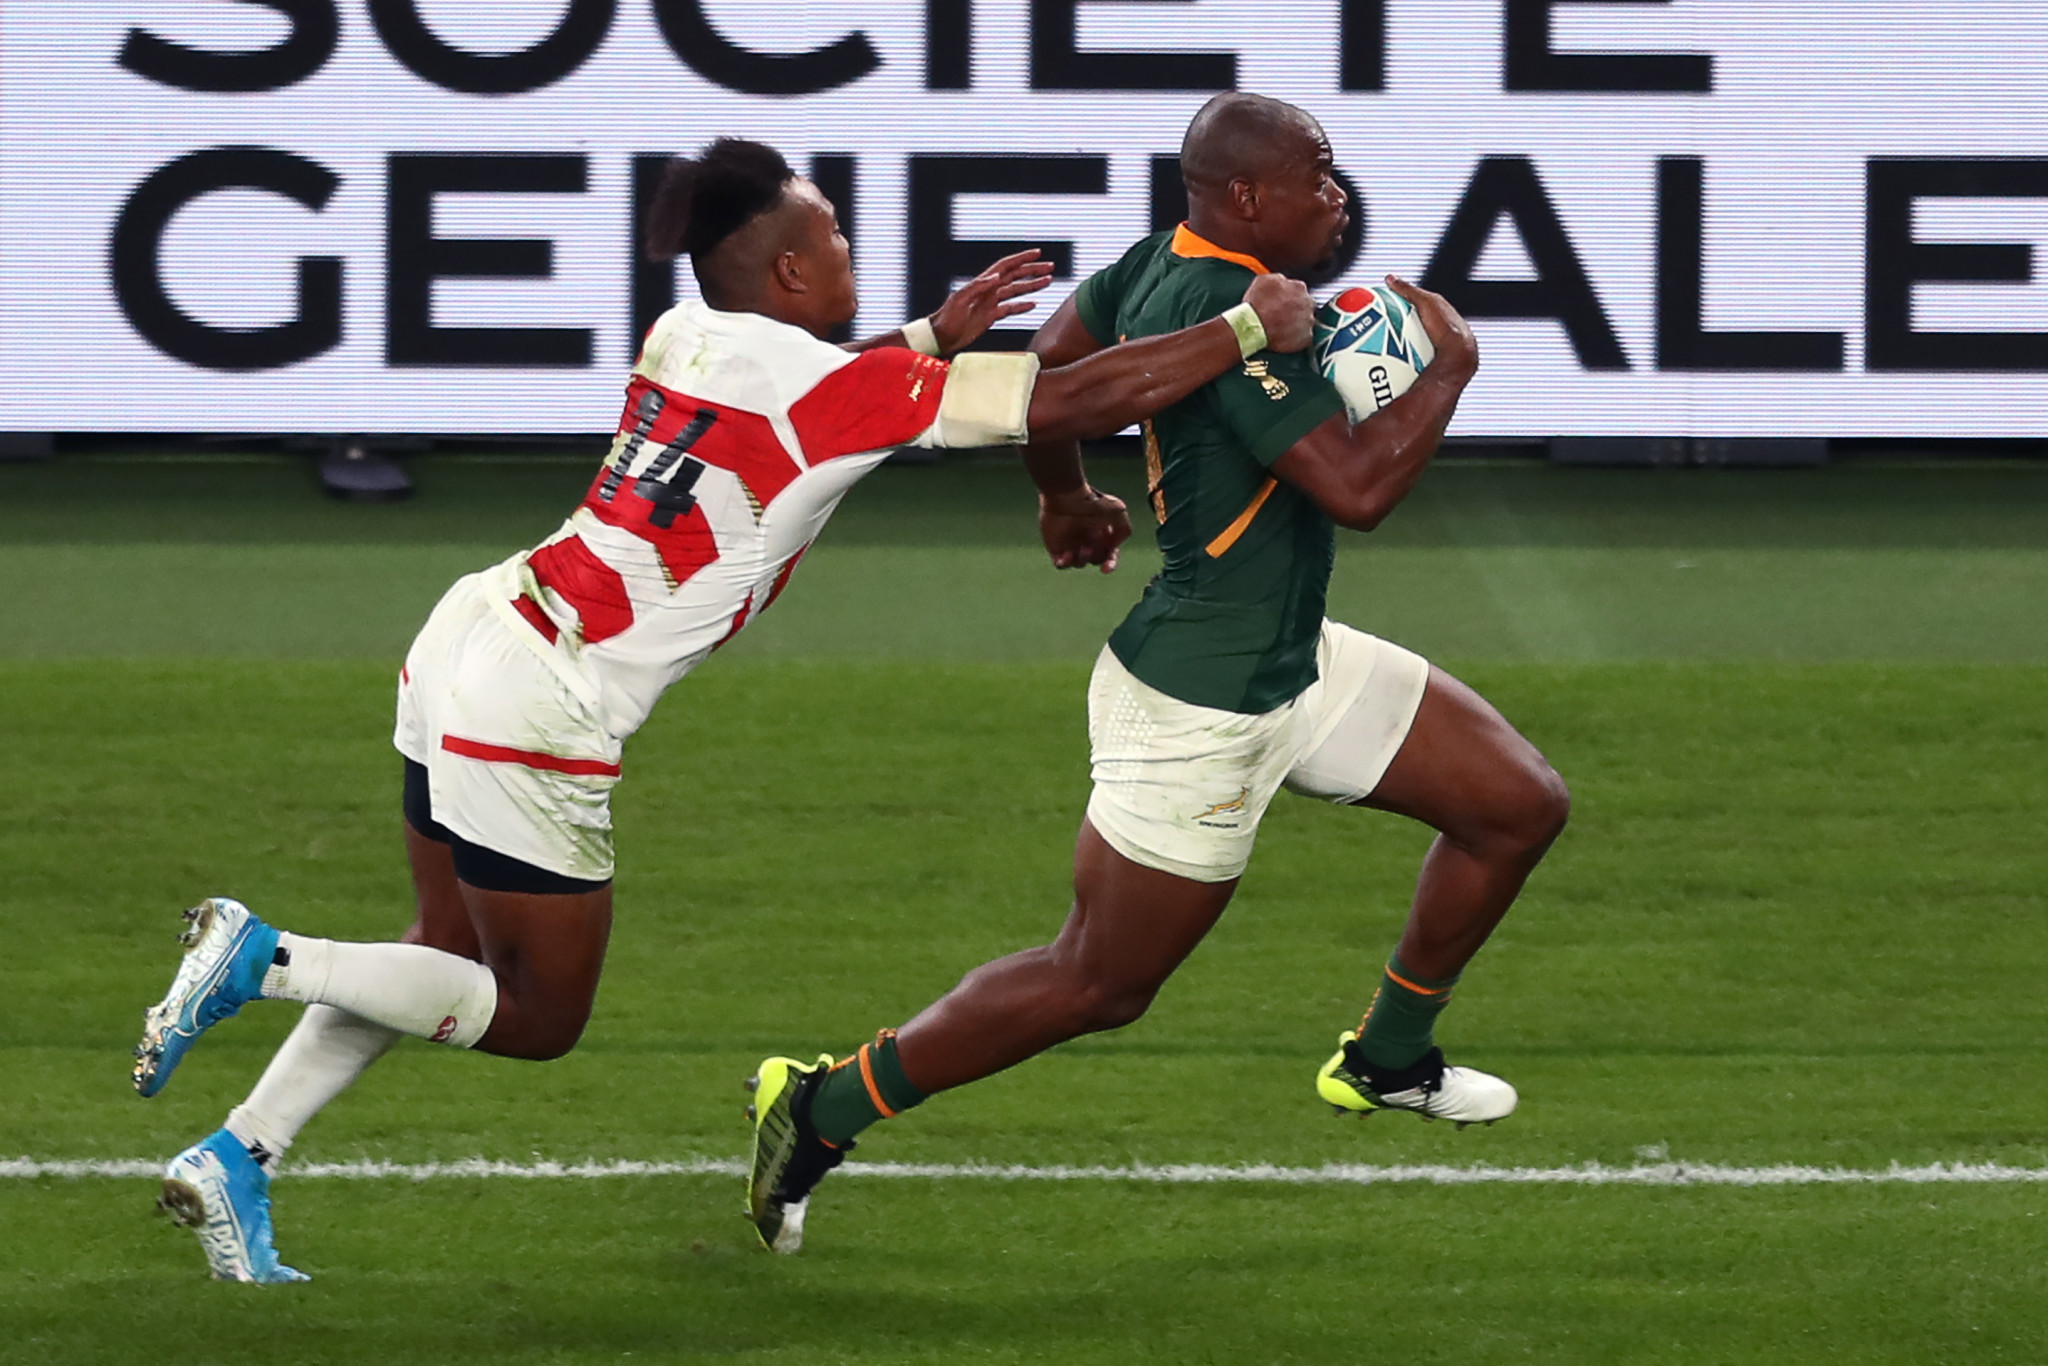 South Africa proved to be too strong for Japan, triumphing 26-3 ©Getty Images